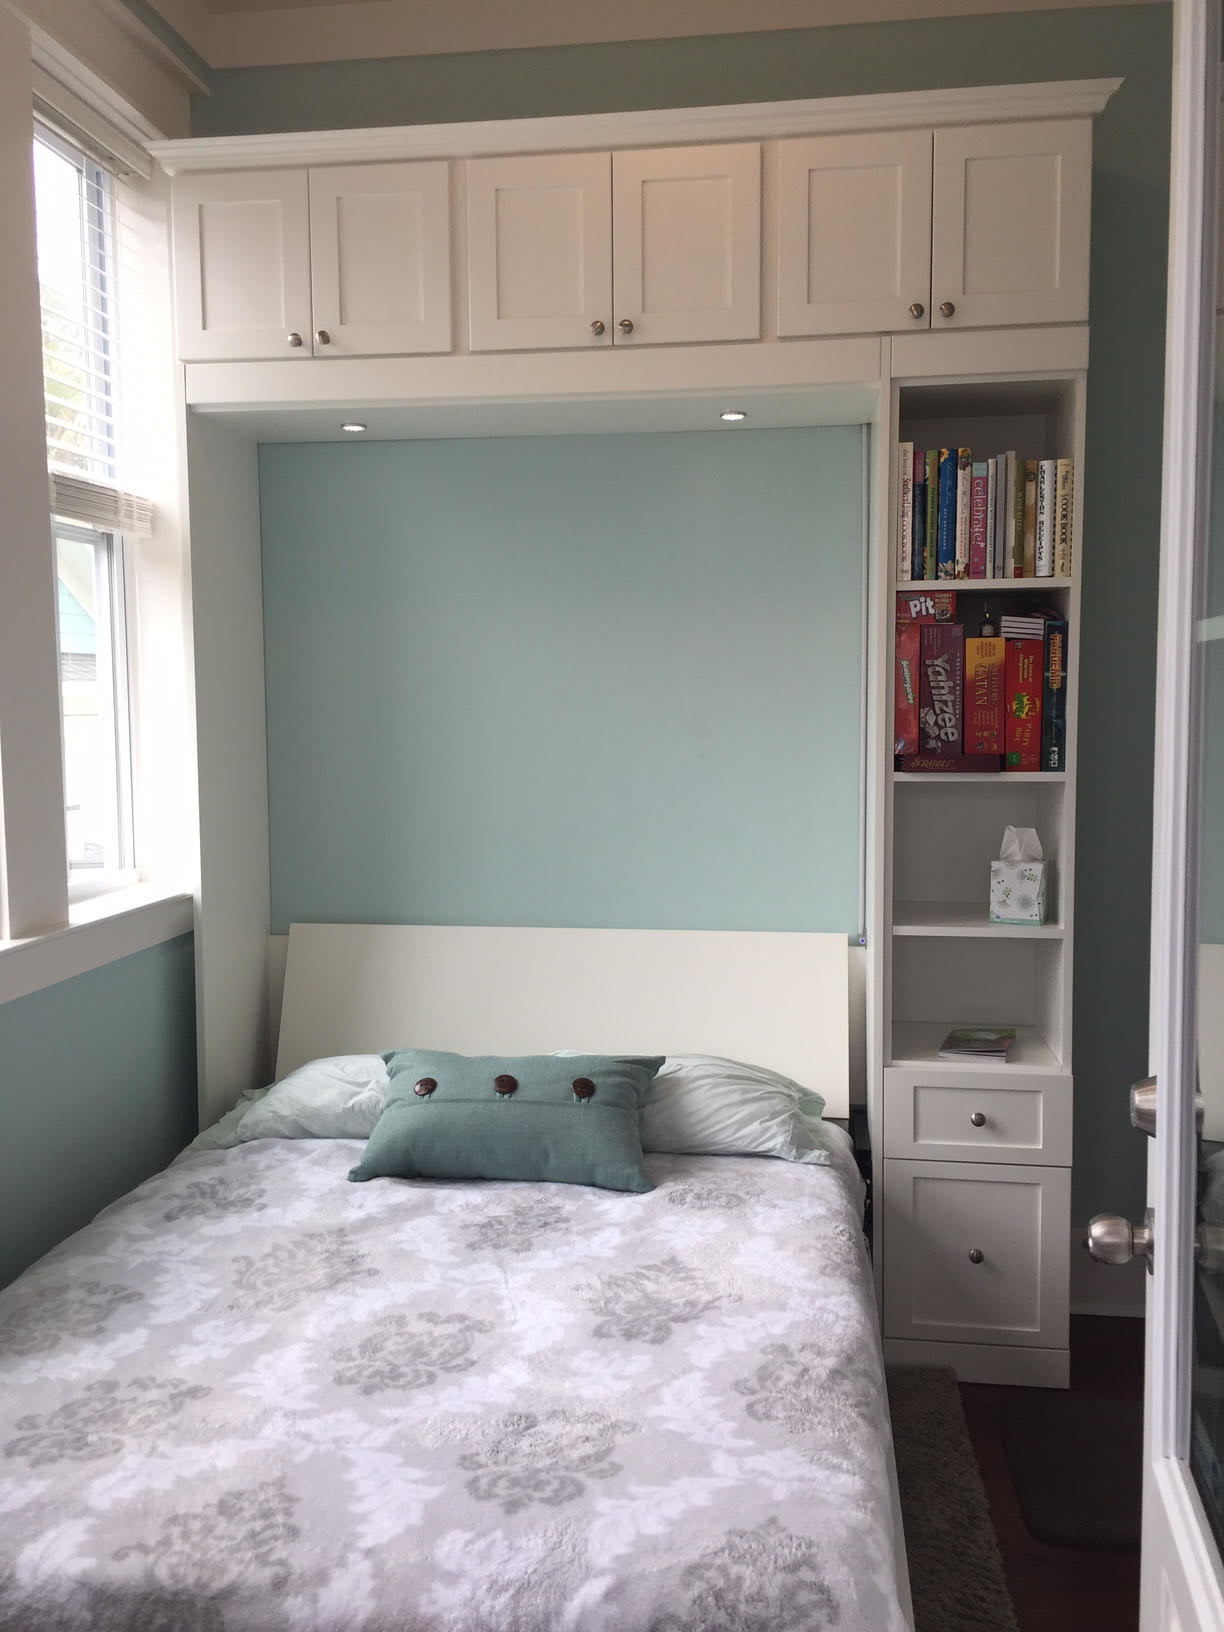 Murphy beds of charleston : Reasons to buy a murphy bed more space place mt pleasant